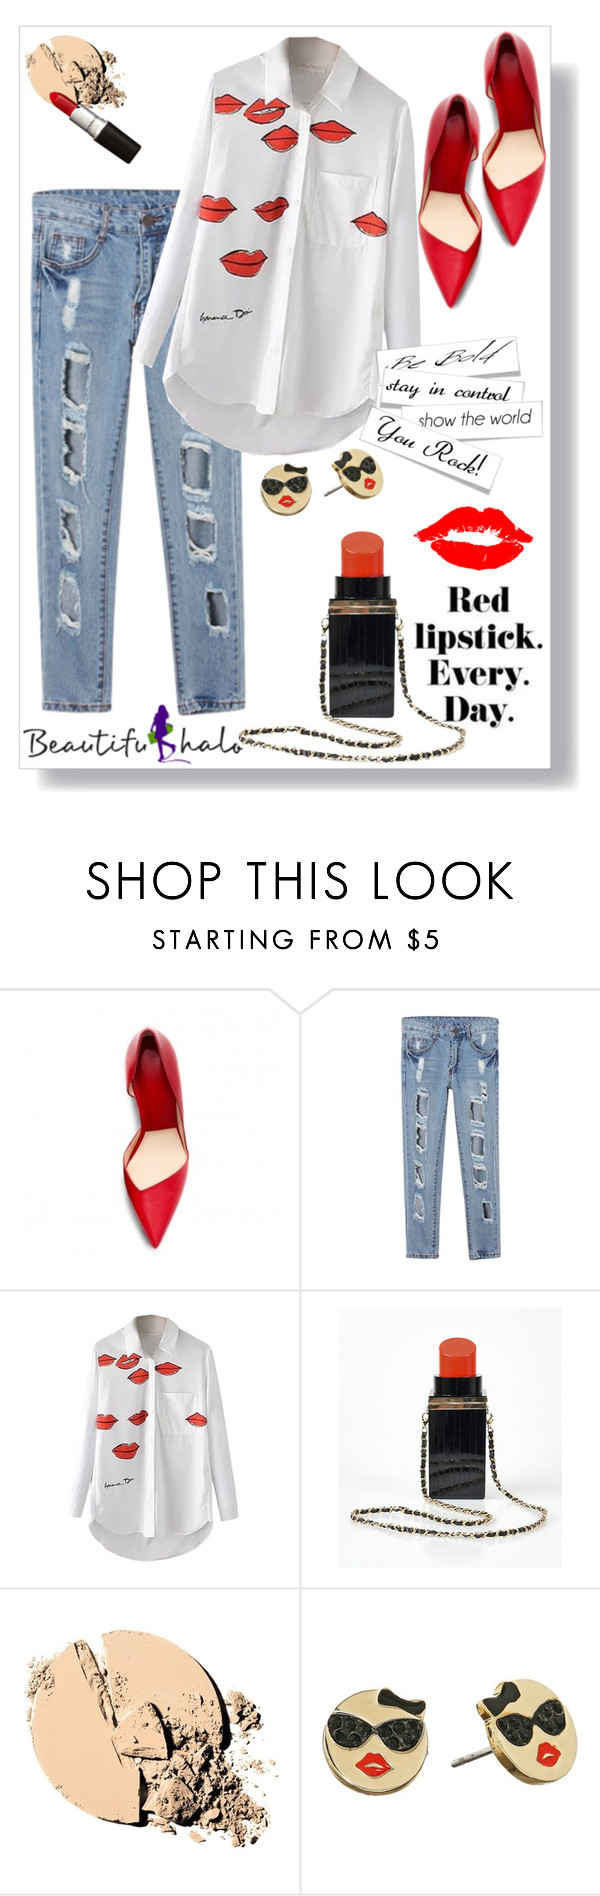 """Beautifulhalo 6"" by christinacastro830 ❤ liked on Polyvore featuring Maybelline, Kate Spade, vintage and bhalo"